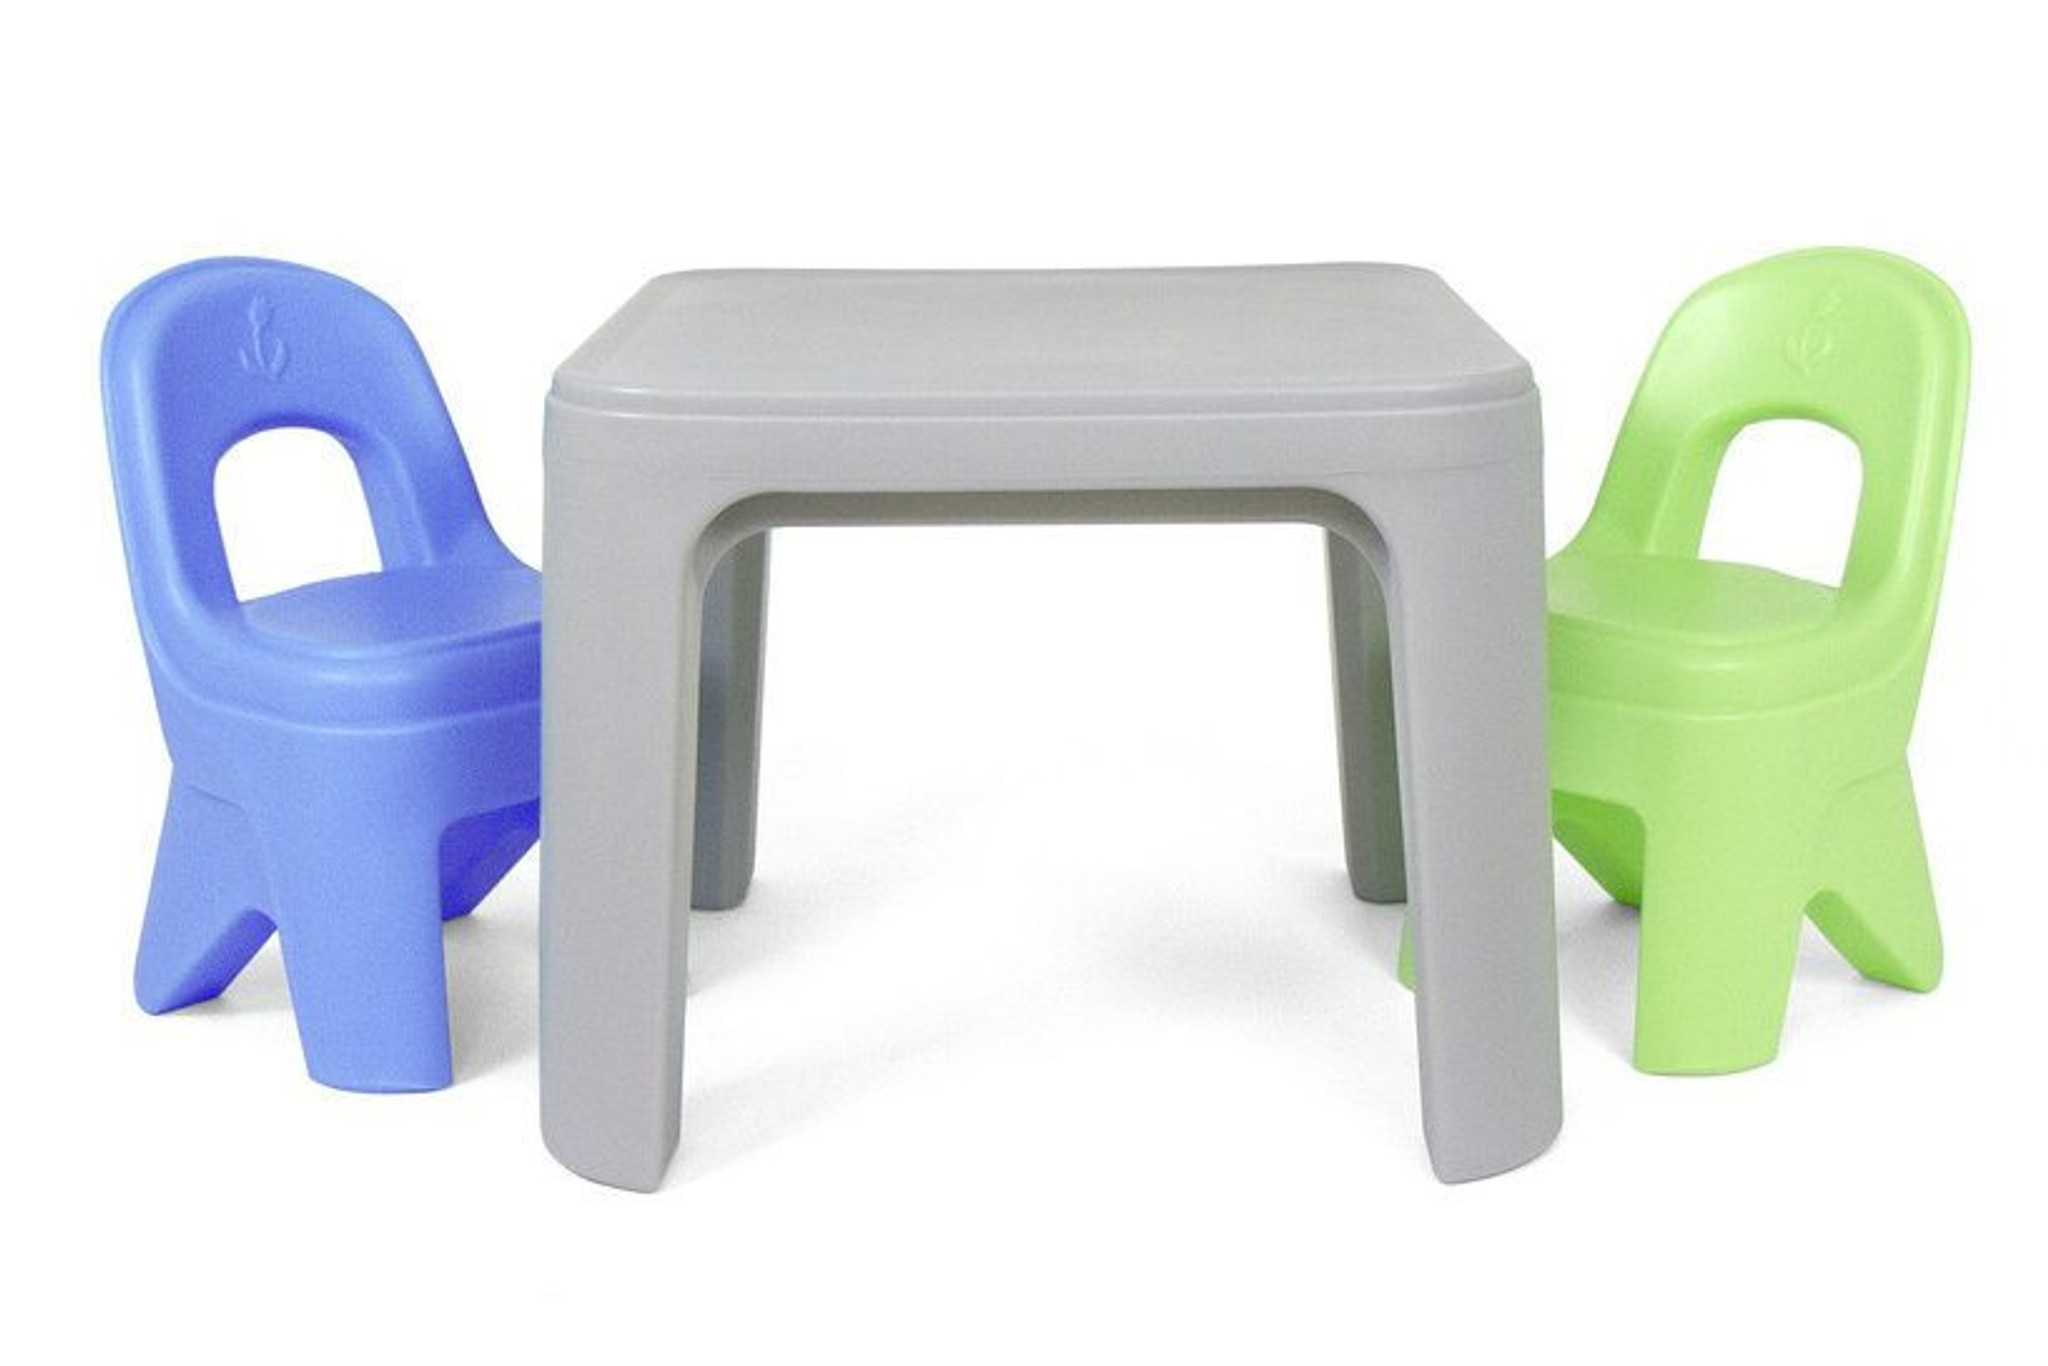 Simplay3 Play Around Table and Chair Set includes a sturdy compact one piece play table with \u0026 | Kids Chairs